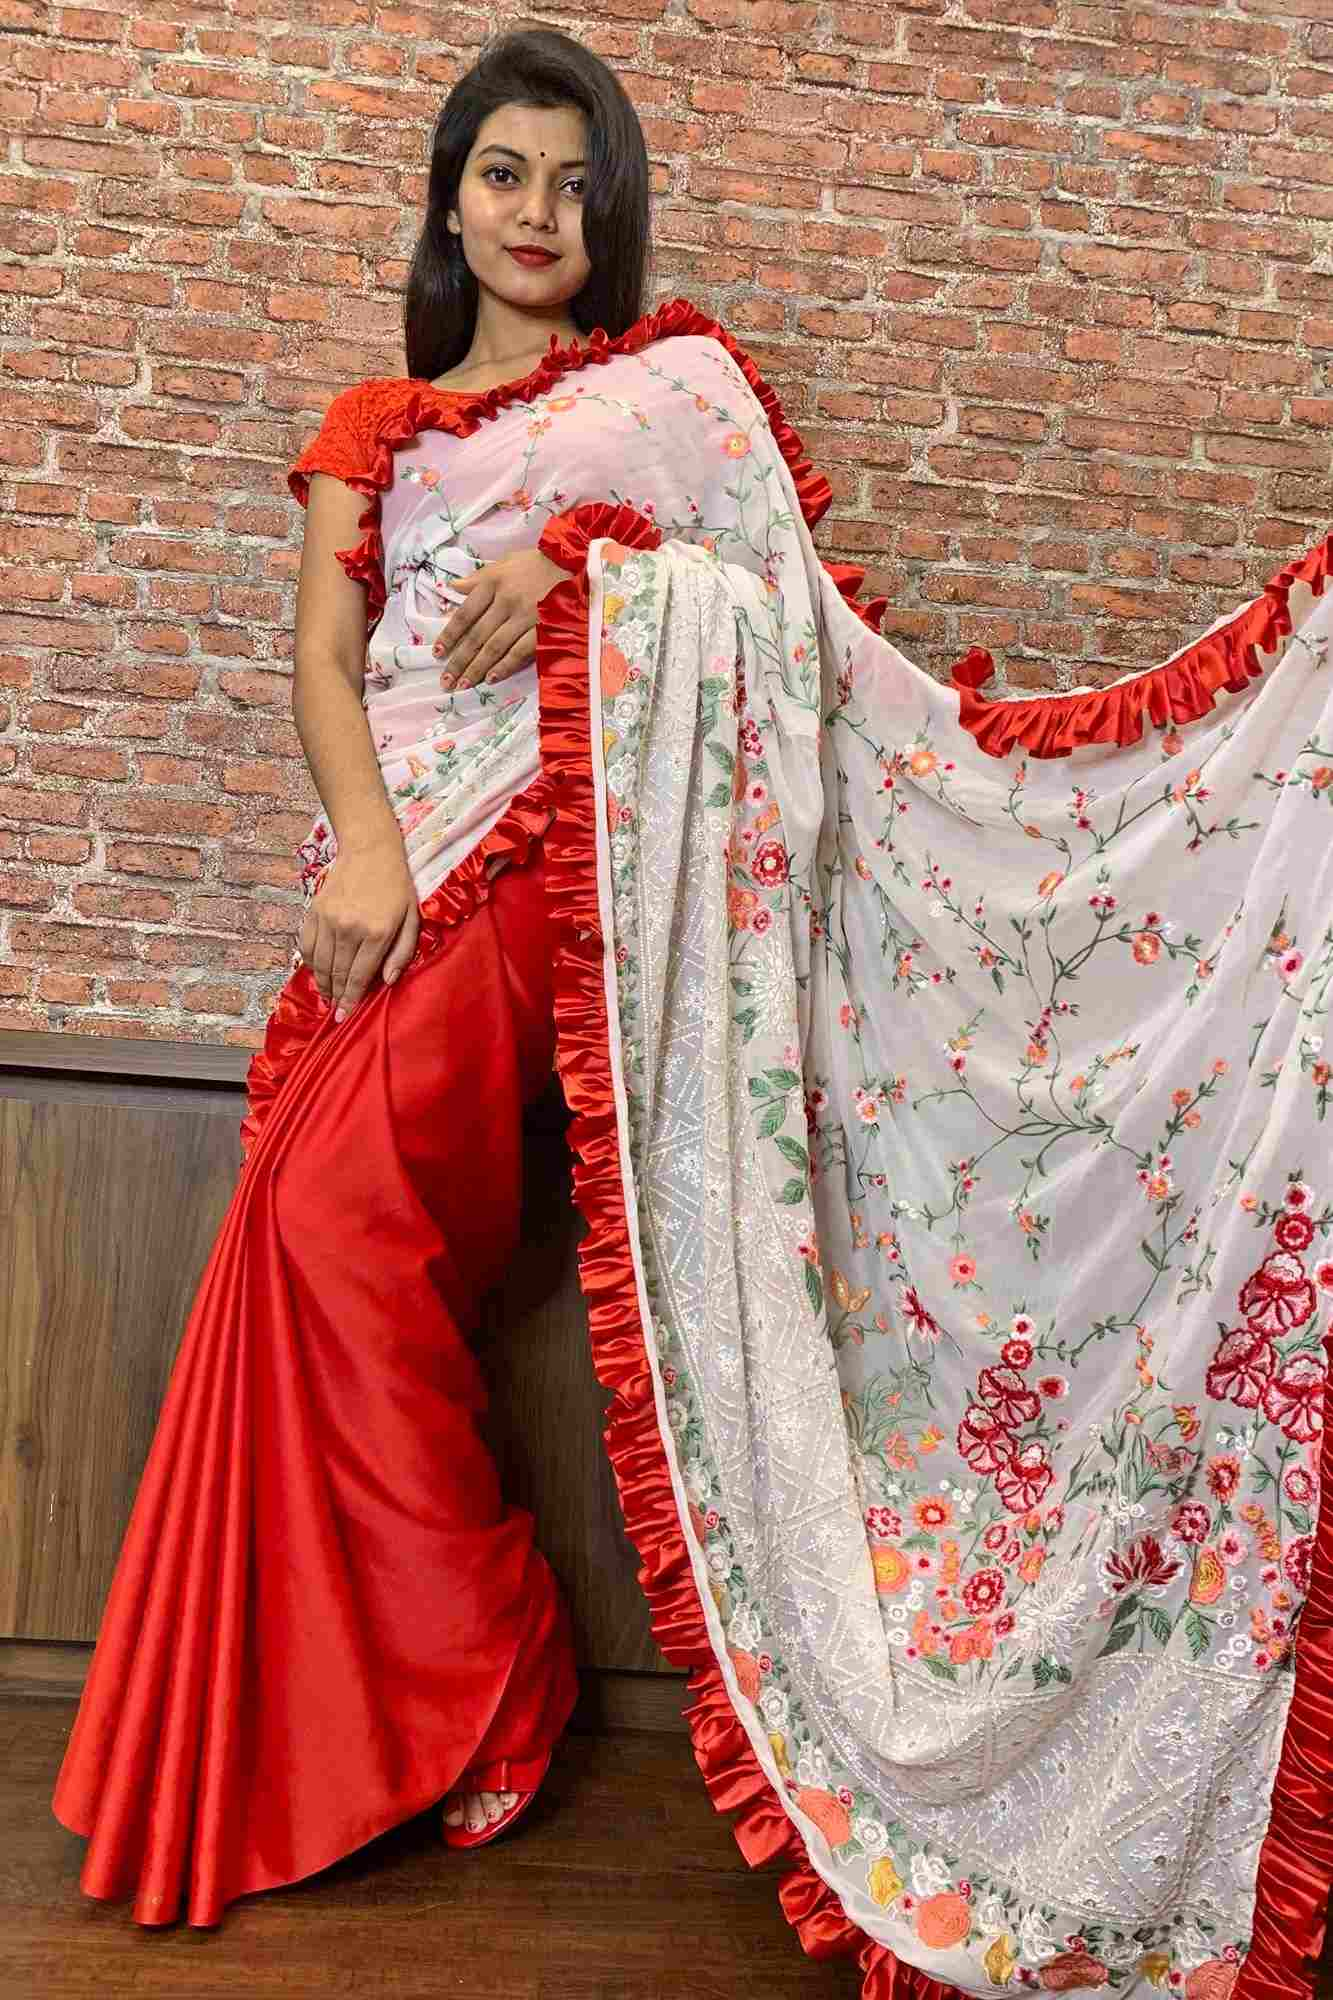 Designer Ruffles White n red georgette embroidered pallu with satin pleats wrap in 1 minute saree - only prepaid orders